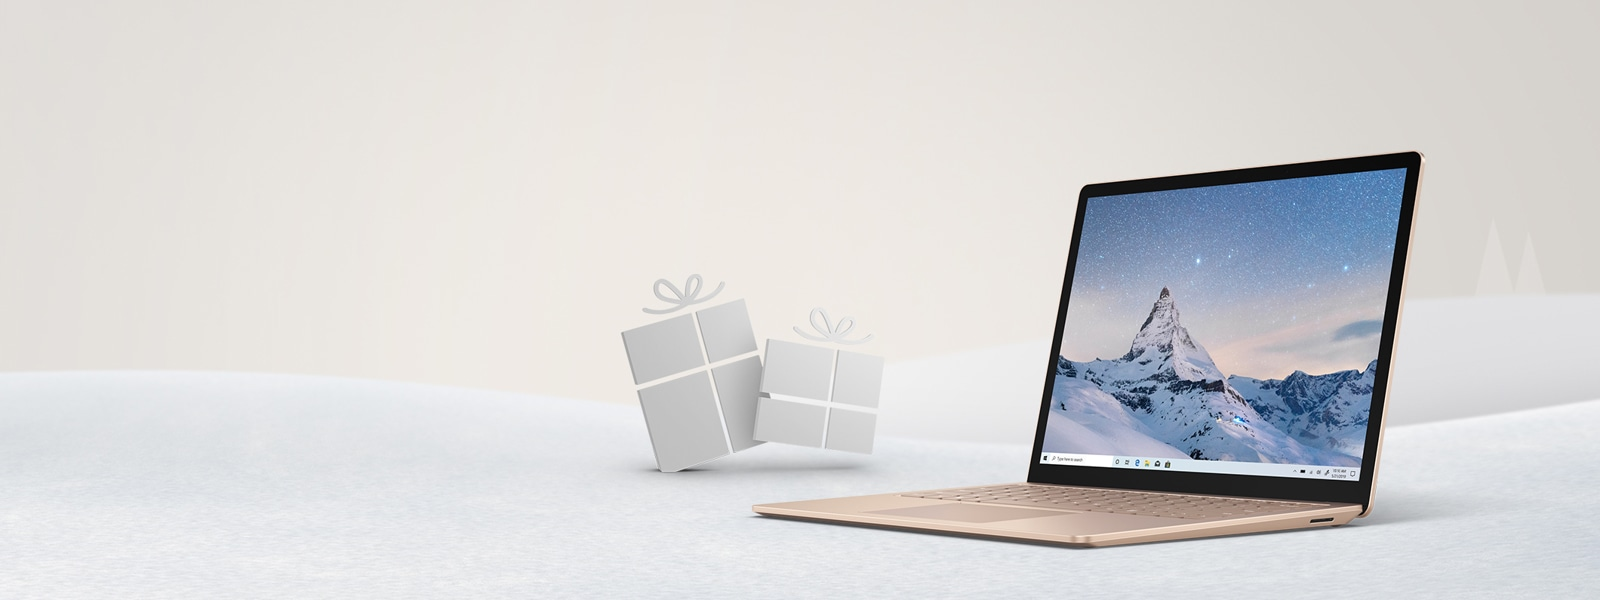 A sandstone Surface Laptop 3